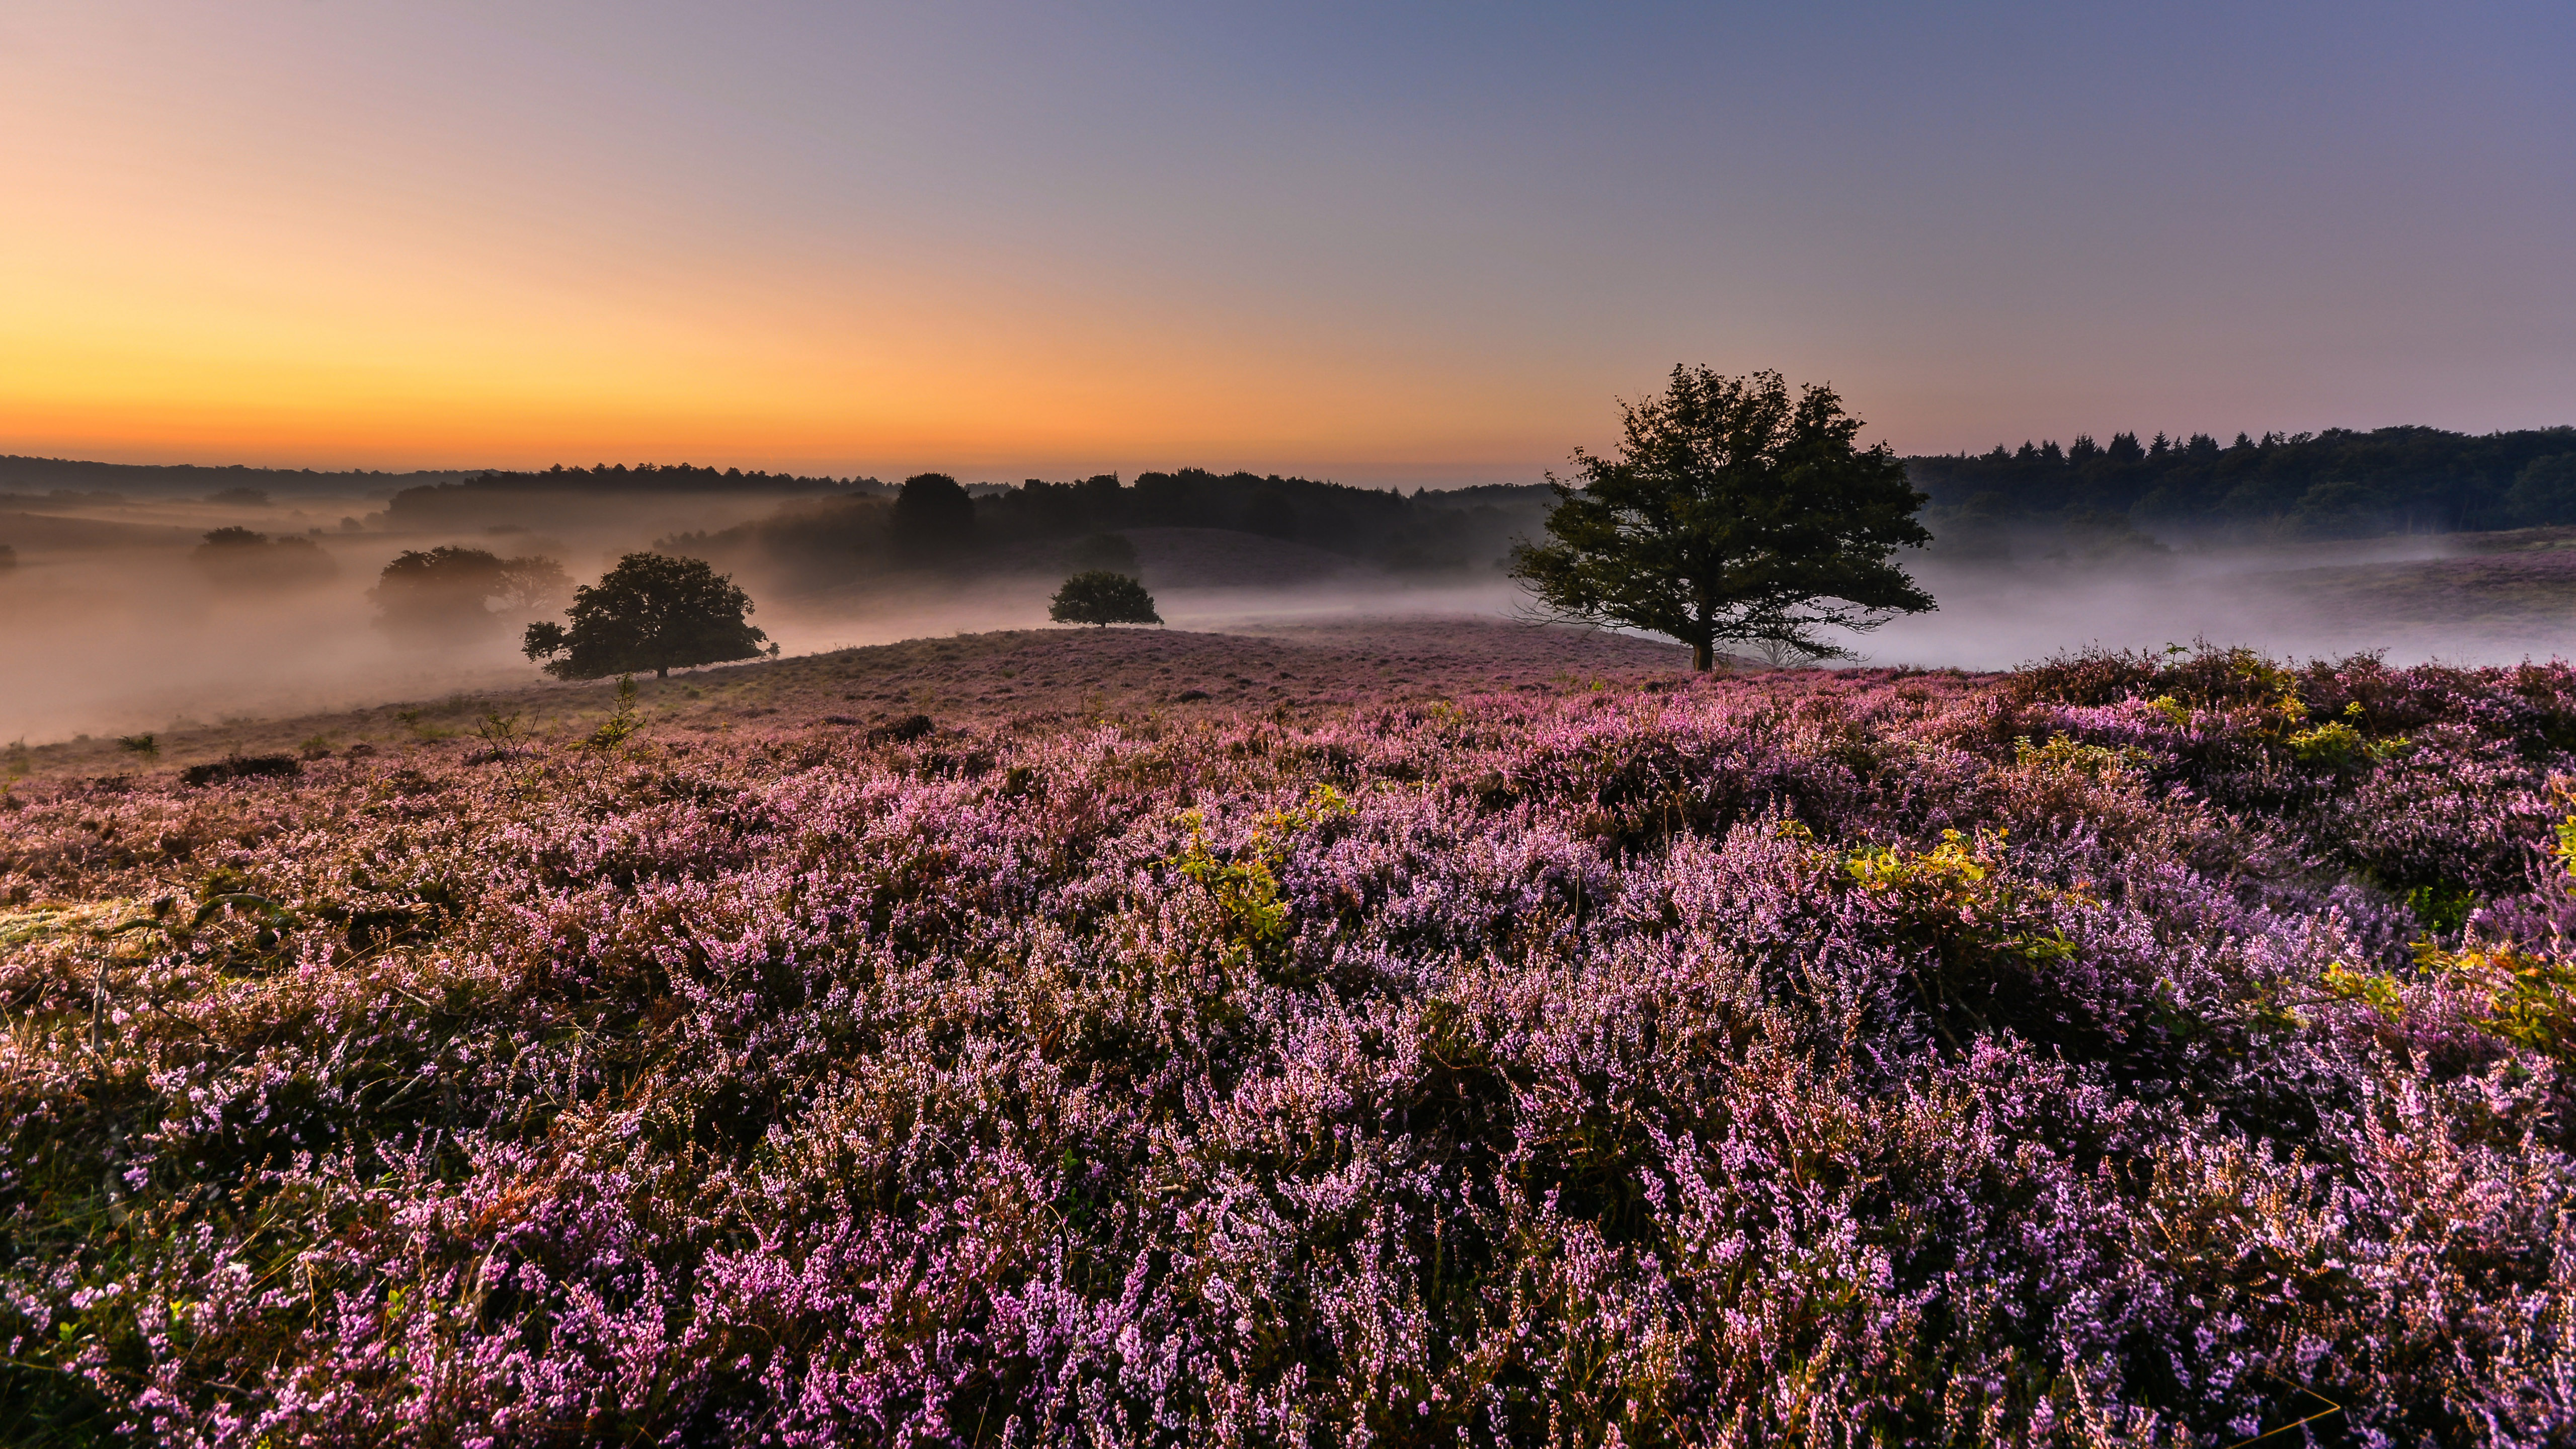 Beautiful Fall Pictures Wallpaper Sunrise Morning In Veluwe Netherlands Heather Flowers In